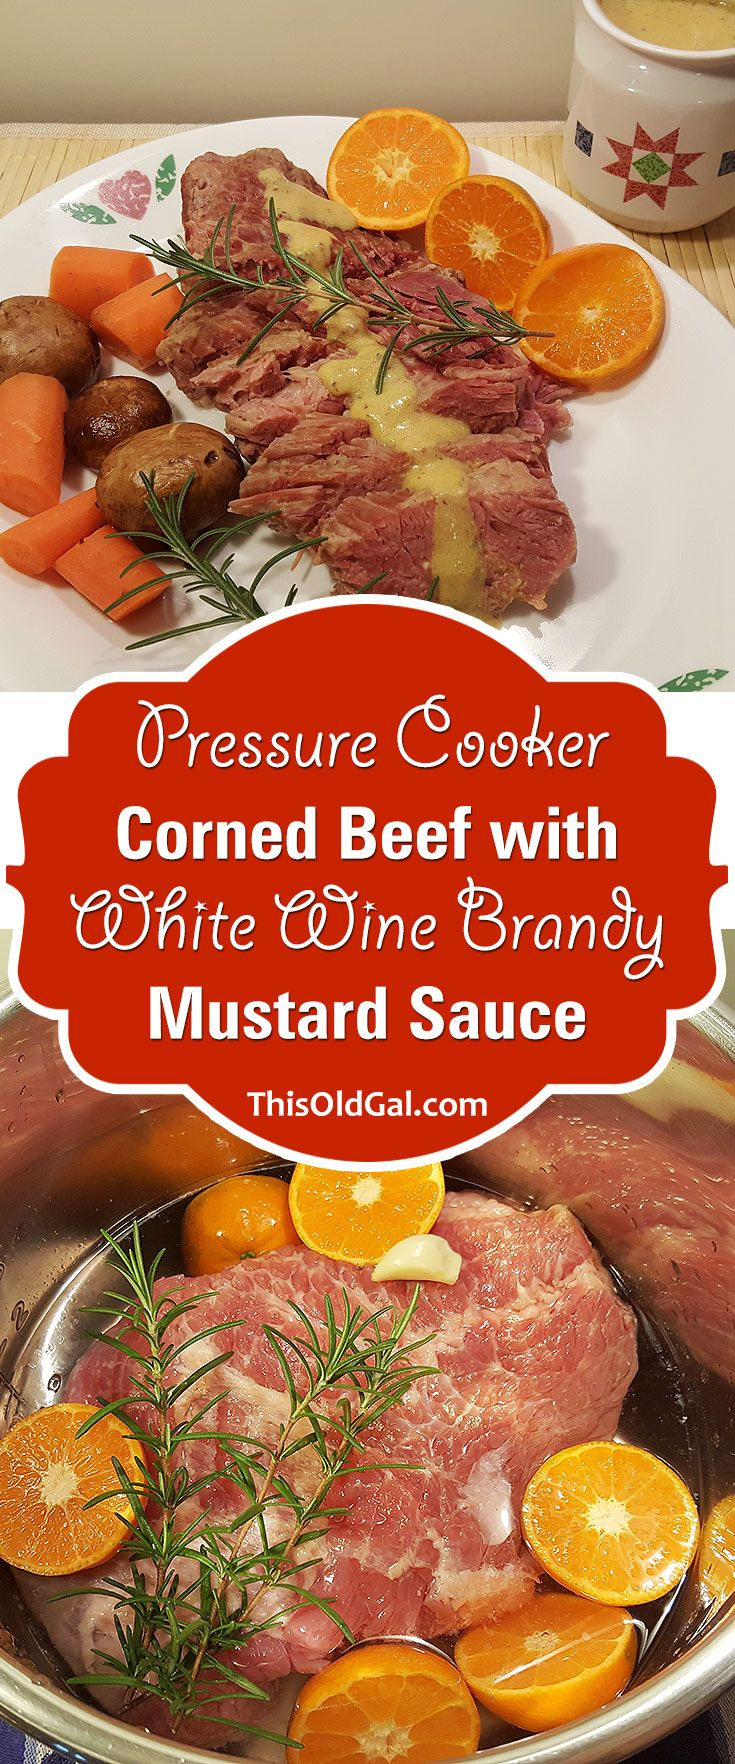 Pressure Cooker Corned Beef With White Wine Brandy Mustard Sauce Via Thisoldgalco Pressure Cooker Corned Beef Best Pressure Cooker Recipes Instant Pot Recipes